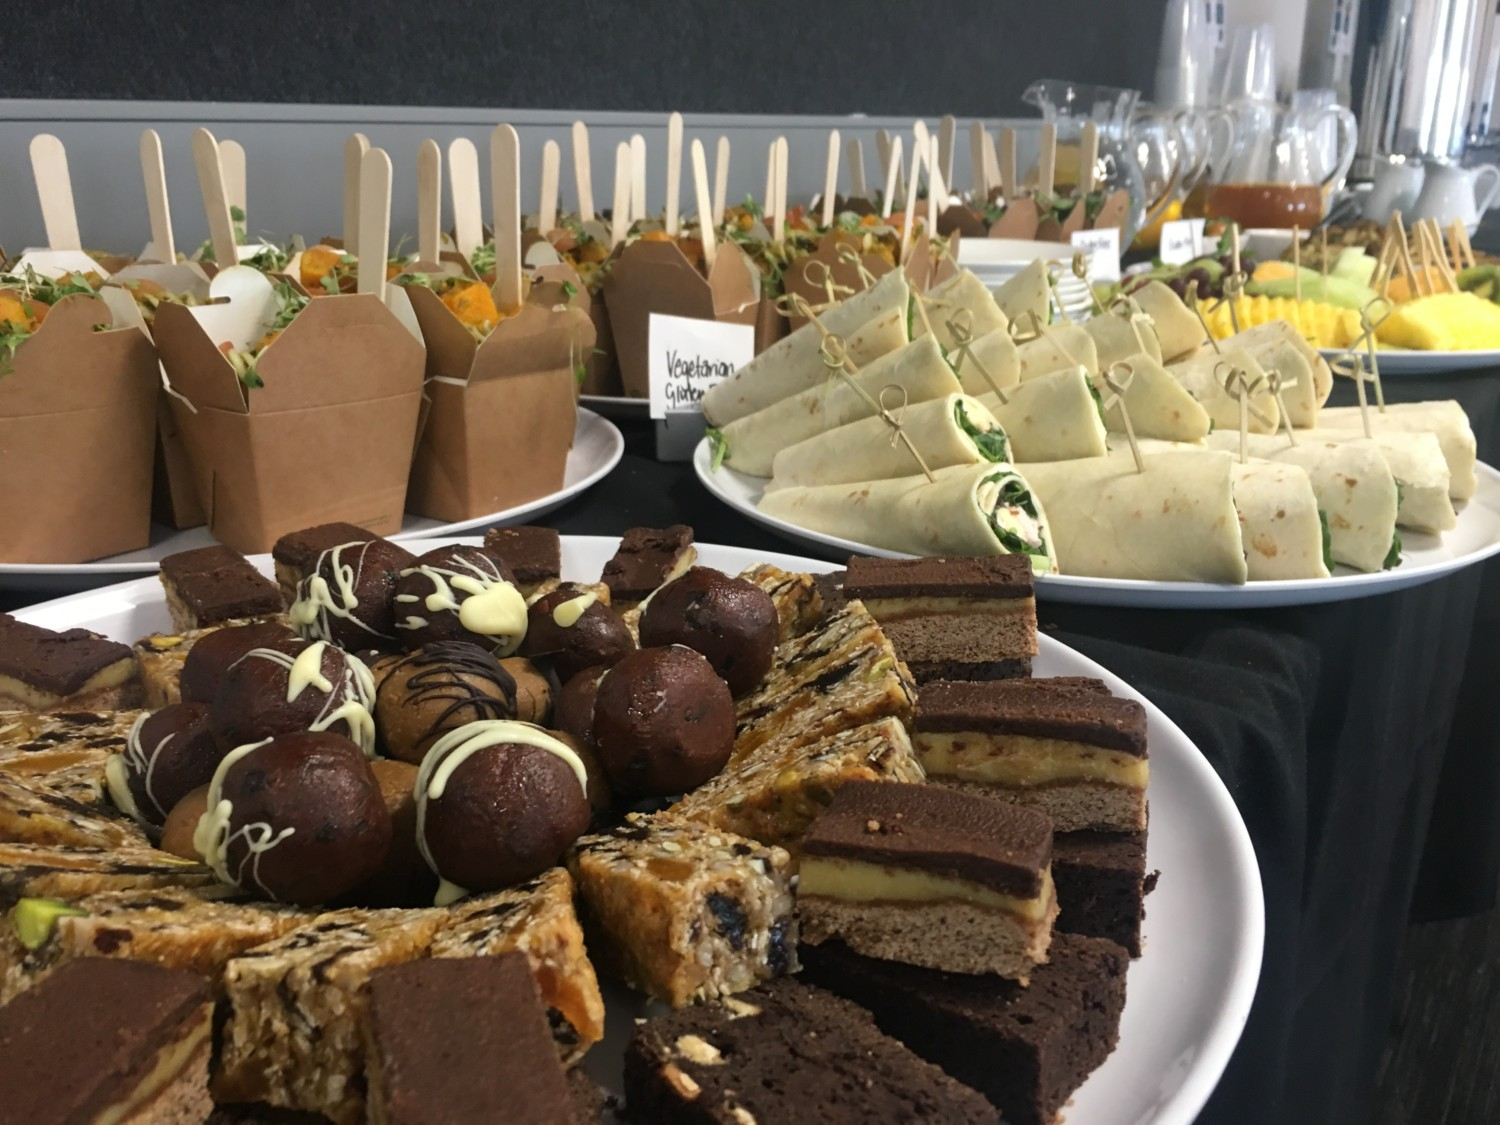 boxed salads, wraps, cakes and slices at a buffet